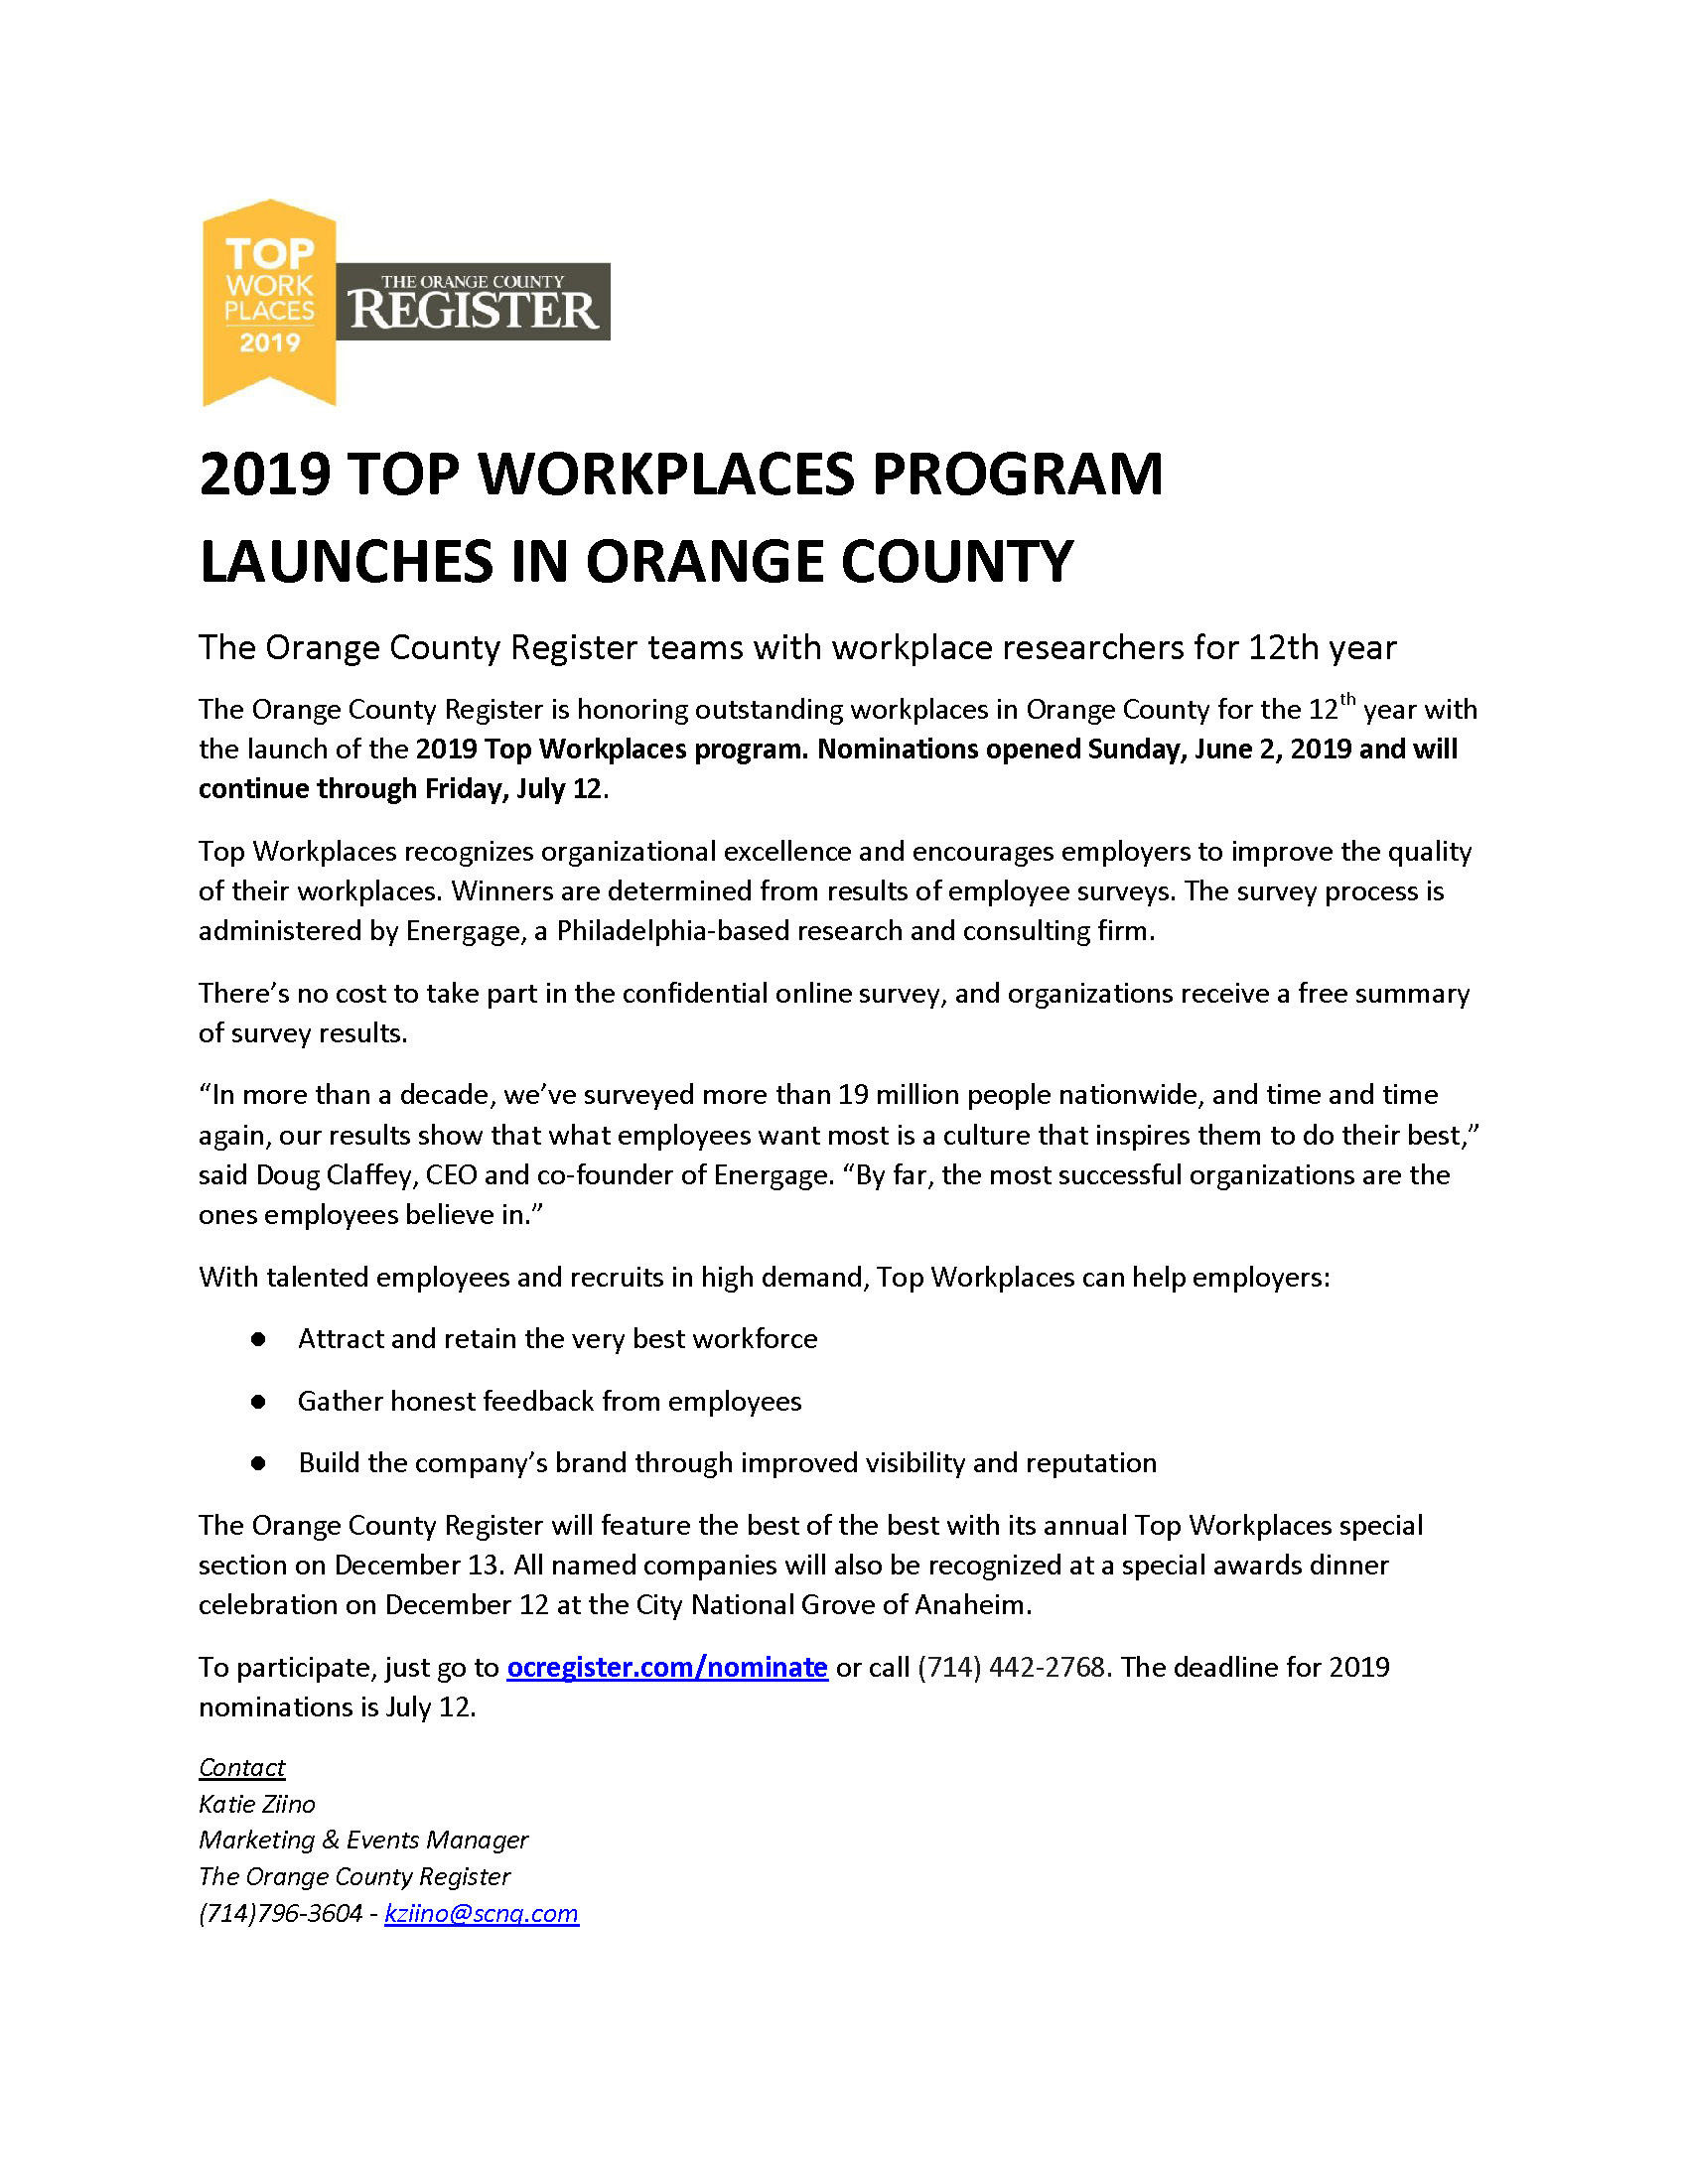 2019 Top Workplaces Program Launches In Orange County - Santa Ana